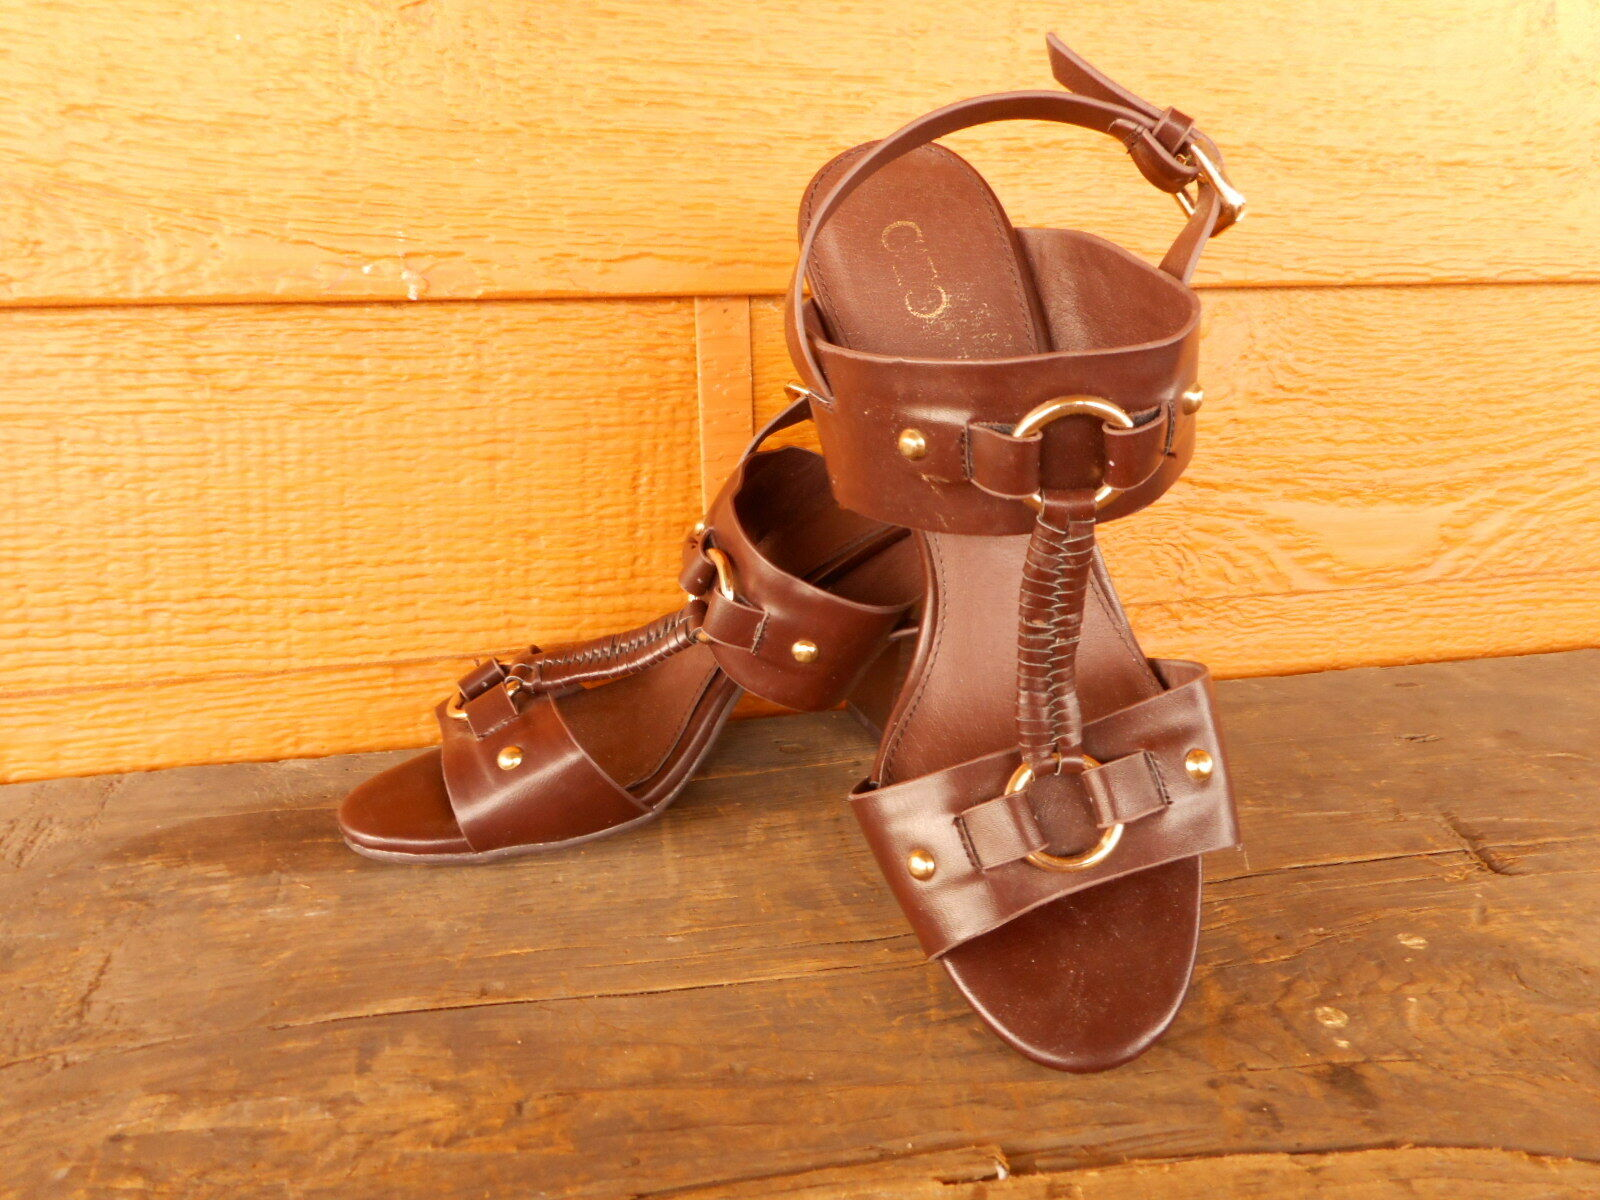 Womens Shoes Cato Brown 8M Strappy Heels Sandals Size 8M Brown Used apx 3.5